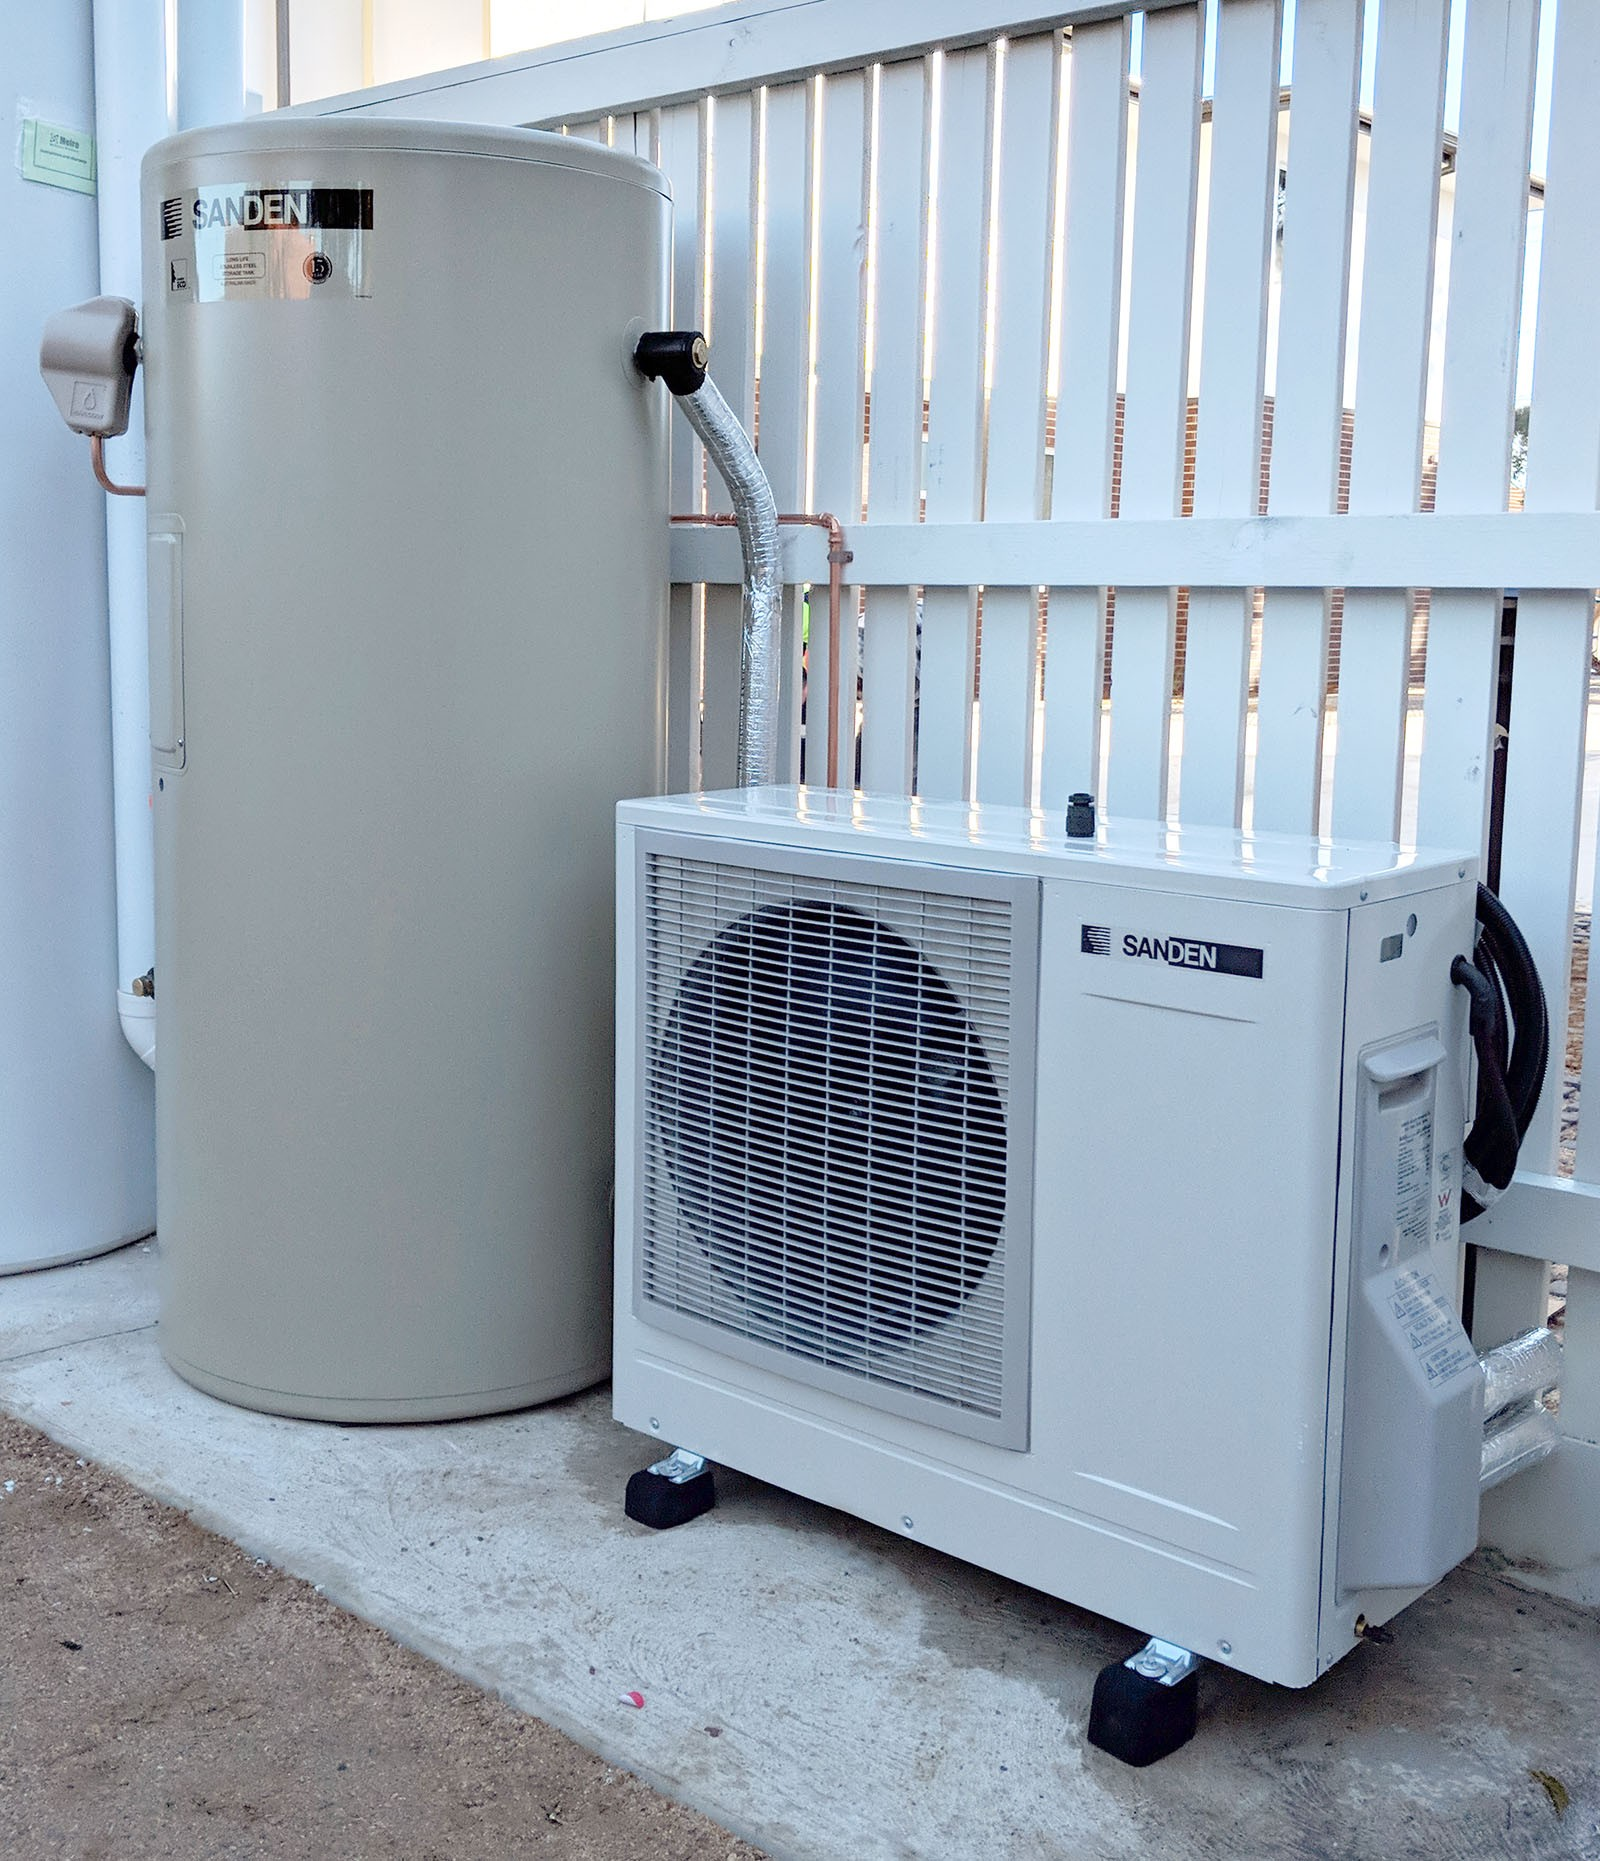 Sanden Eco Plus 250 Litre